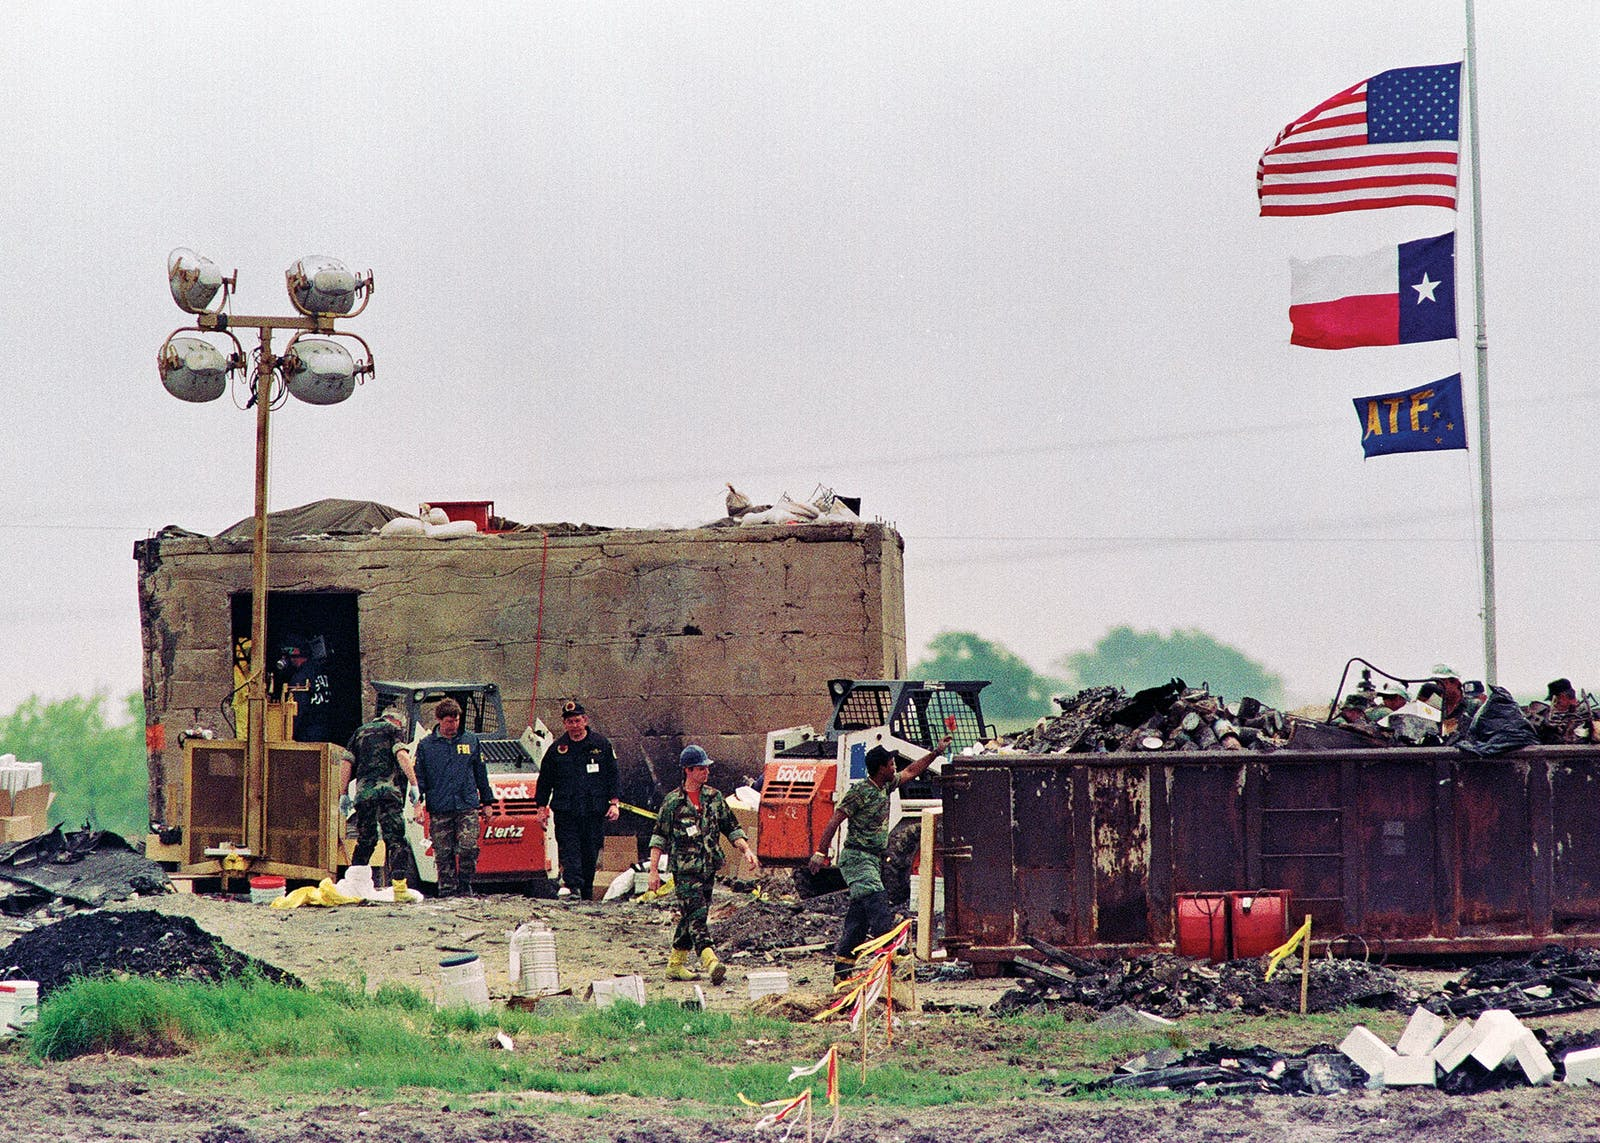 ATF searching Branch Davidian compound